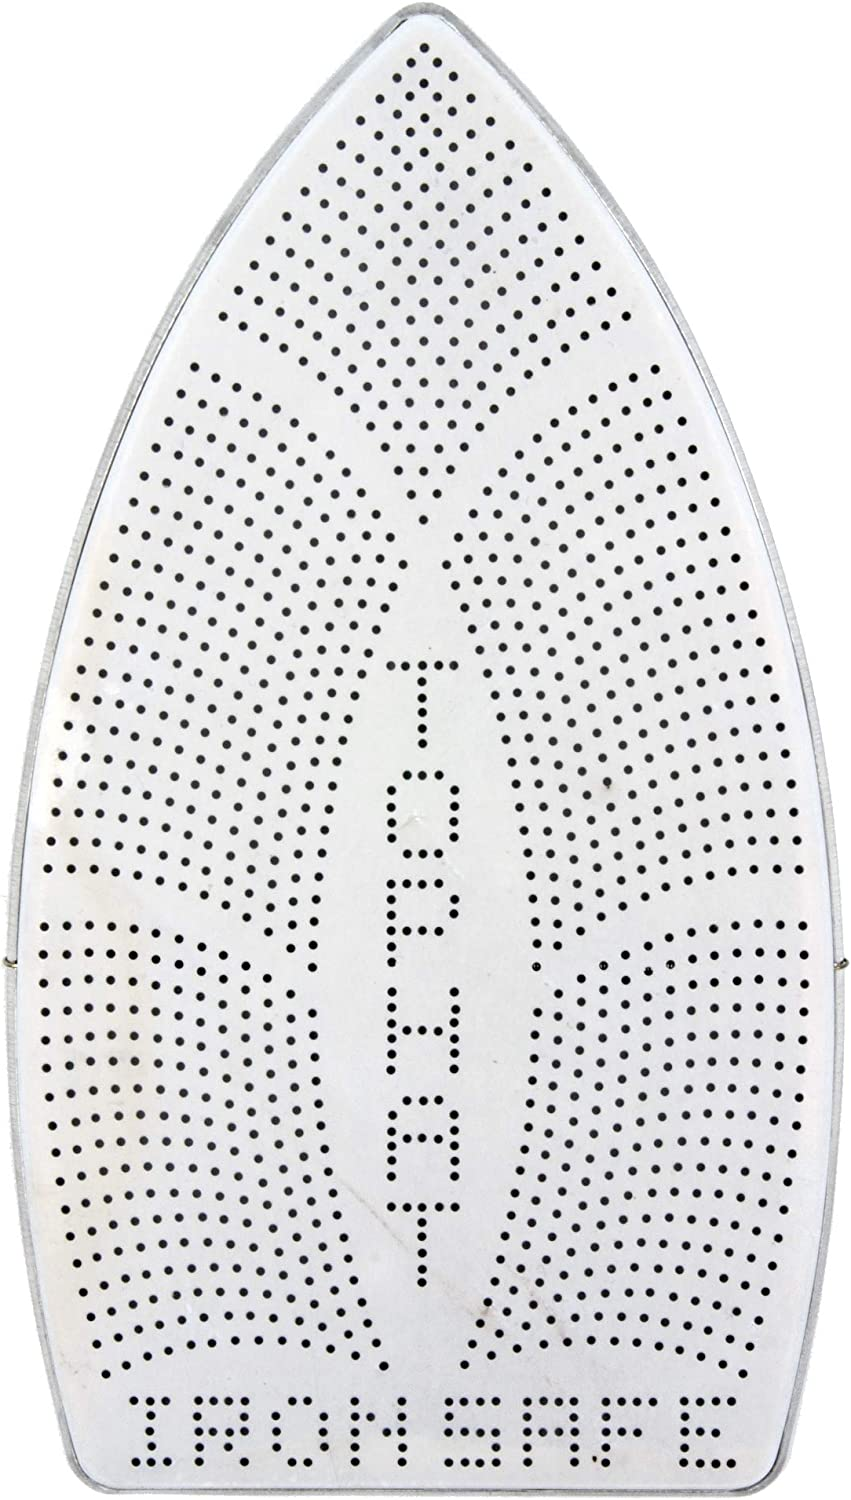 Jacobson Products Iron Safe Top Hat Premium Quality Ironing Shoe & Sole Plate - Prevents Scorching, Sticking & Shine: Arts, Crafts & Sewing